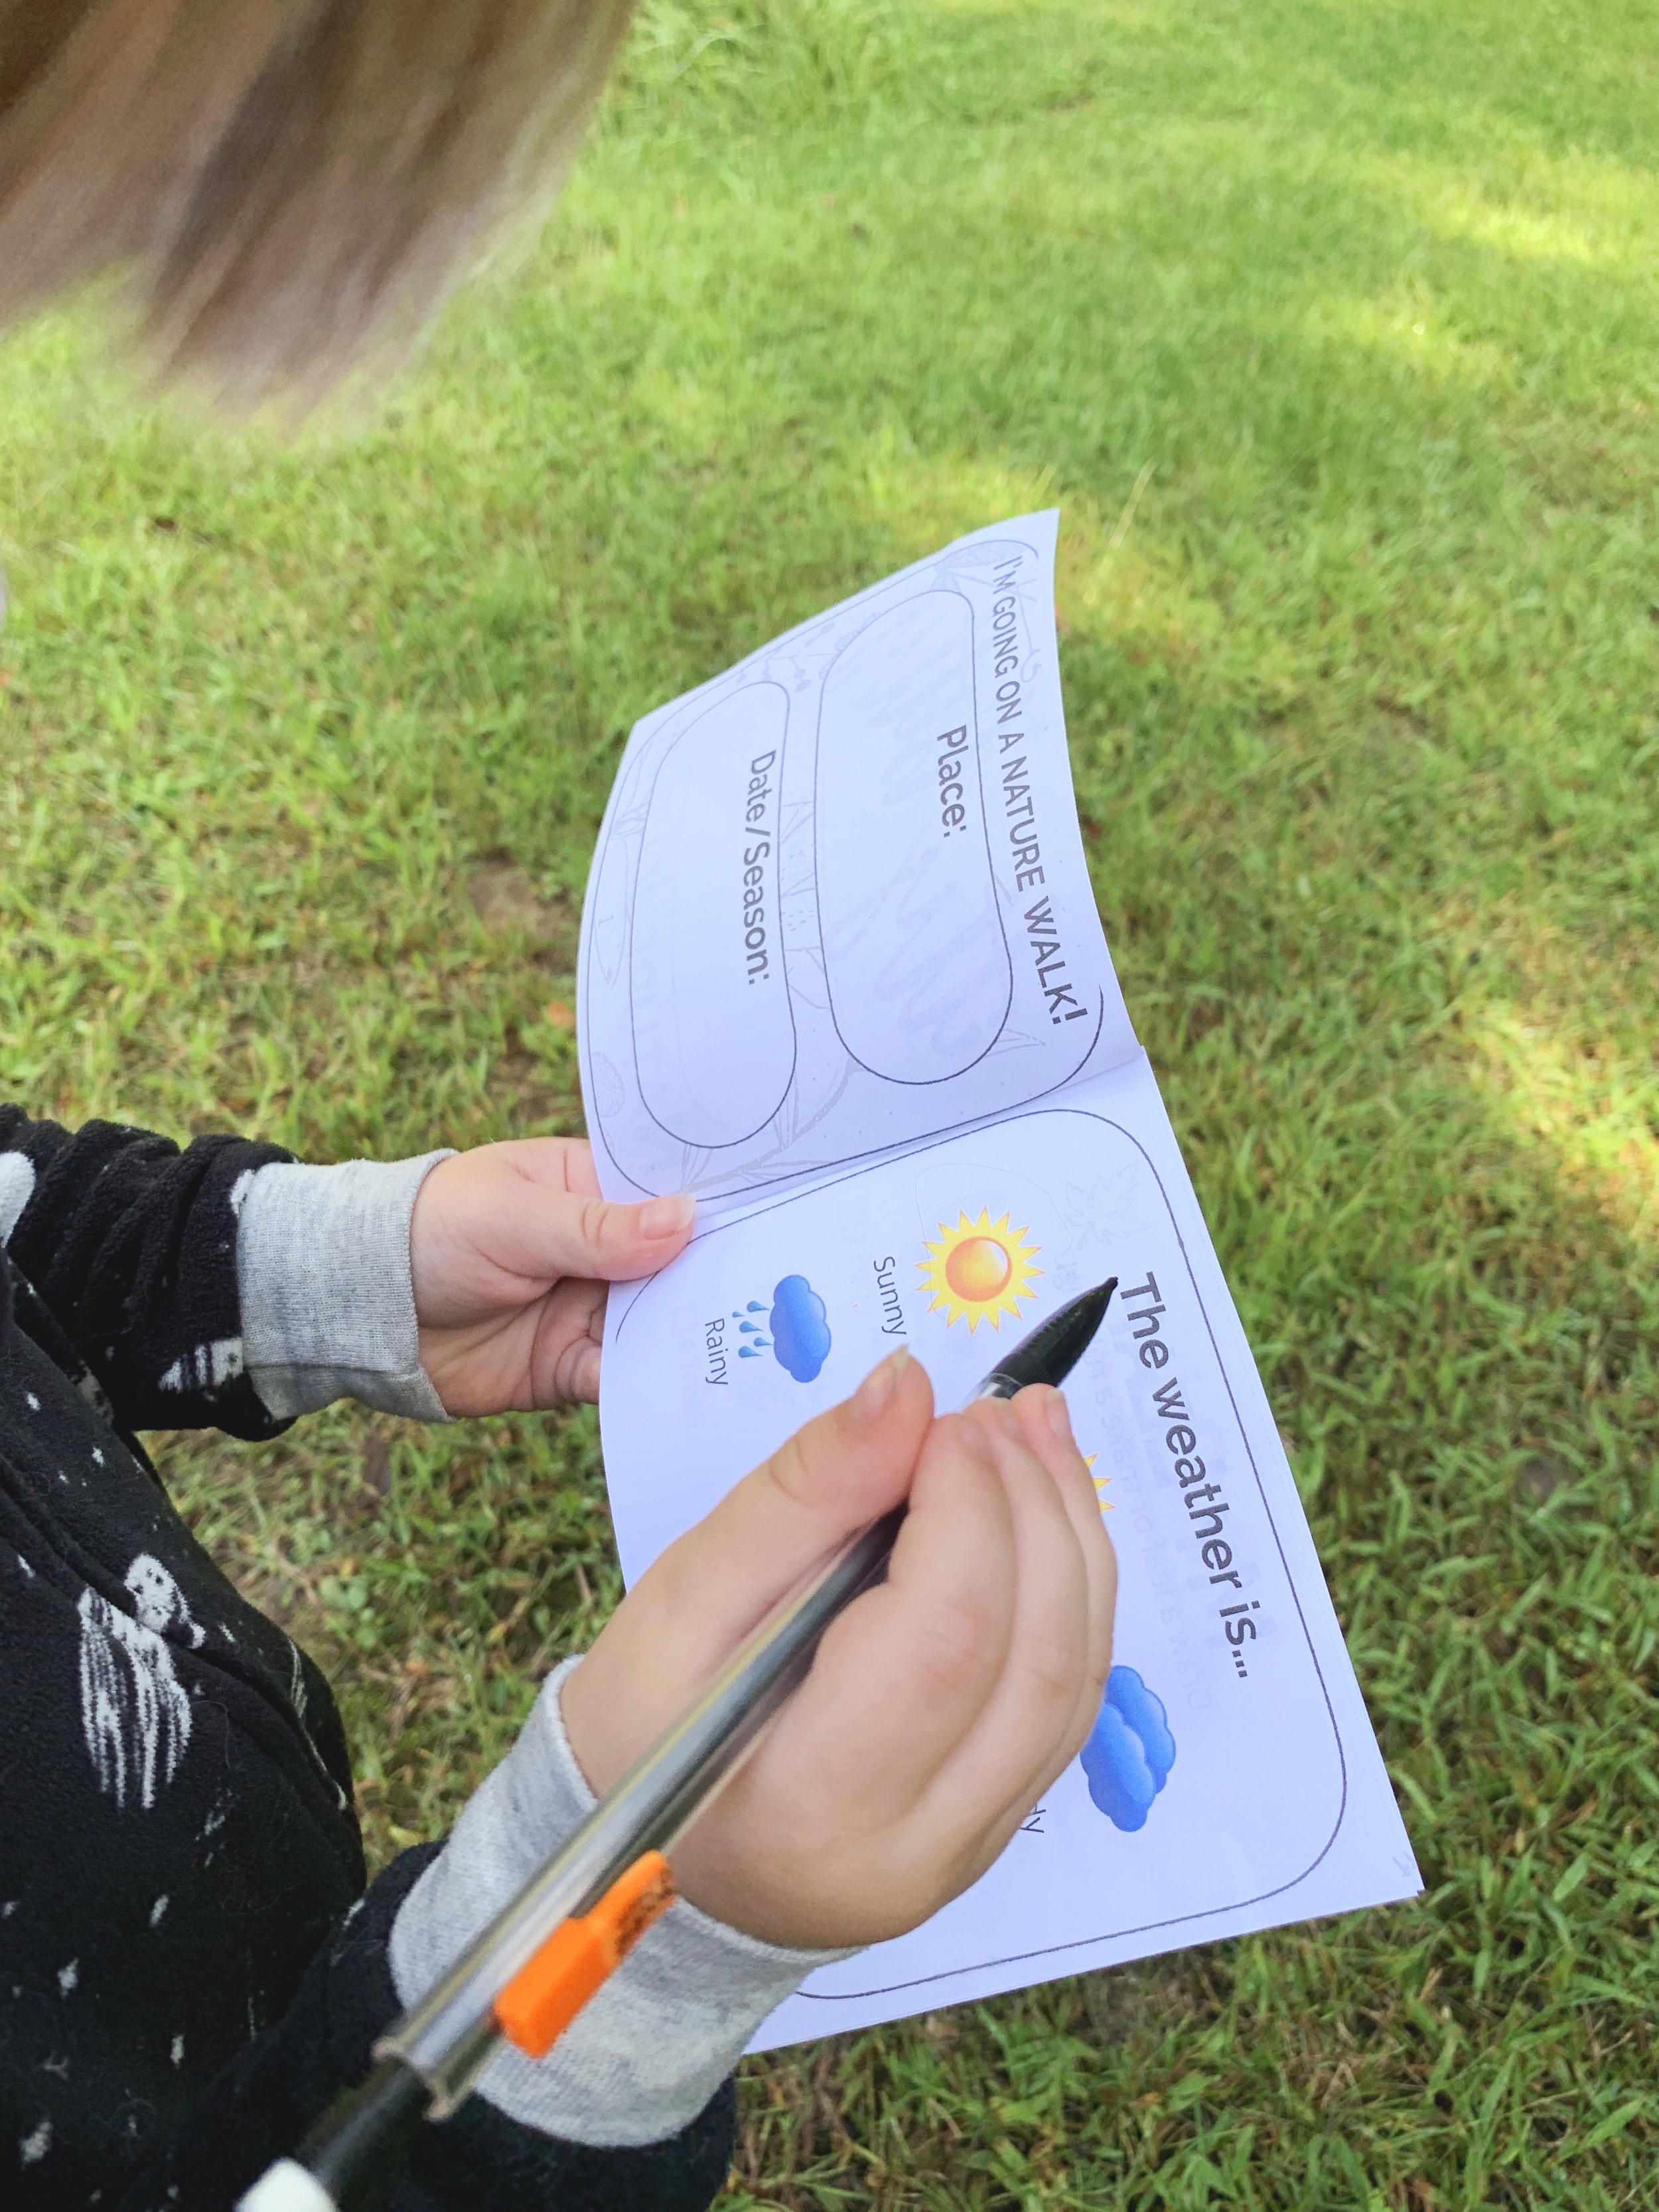 Itty Bitty Nature Journal - encourages preschoolers and toddlers to be actively engaged outdoors!